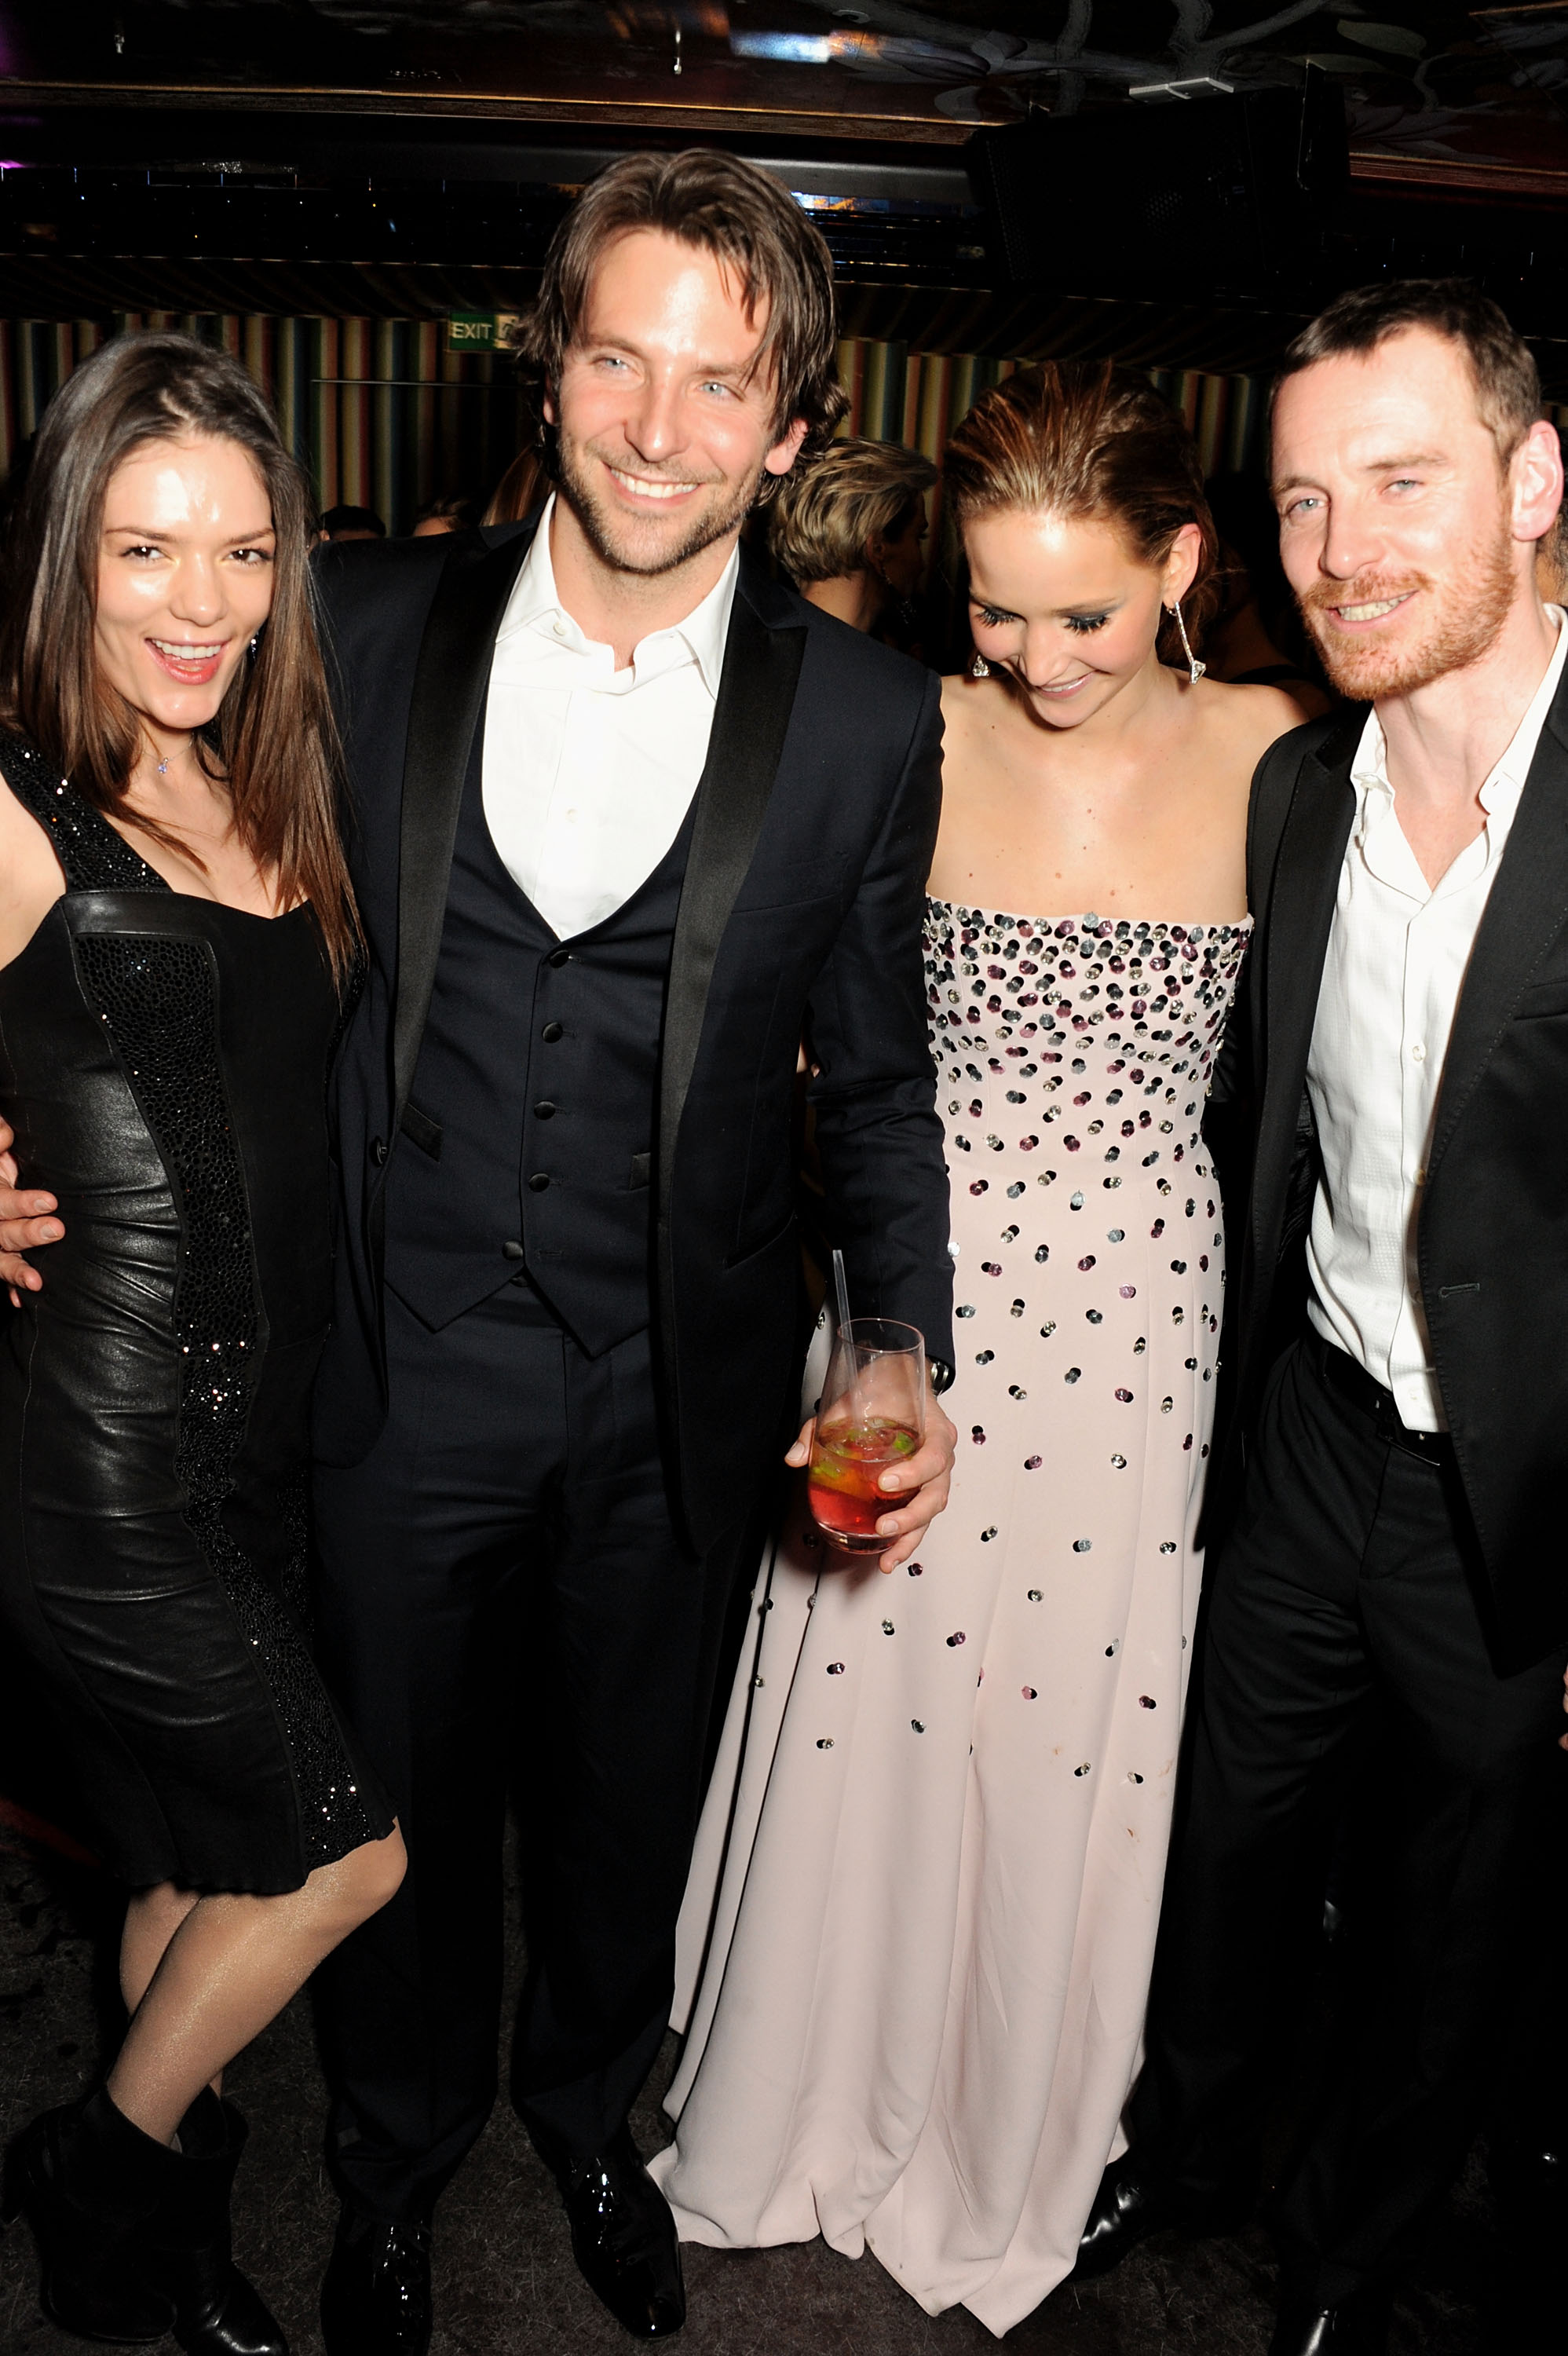 Party People Baftas After Party Whatshewears Ie